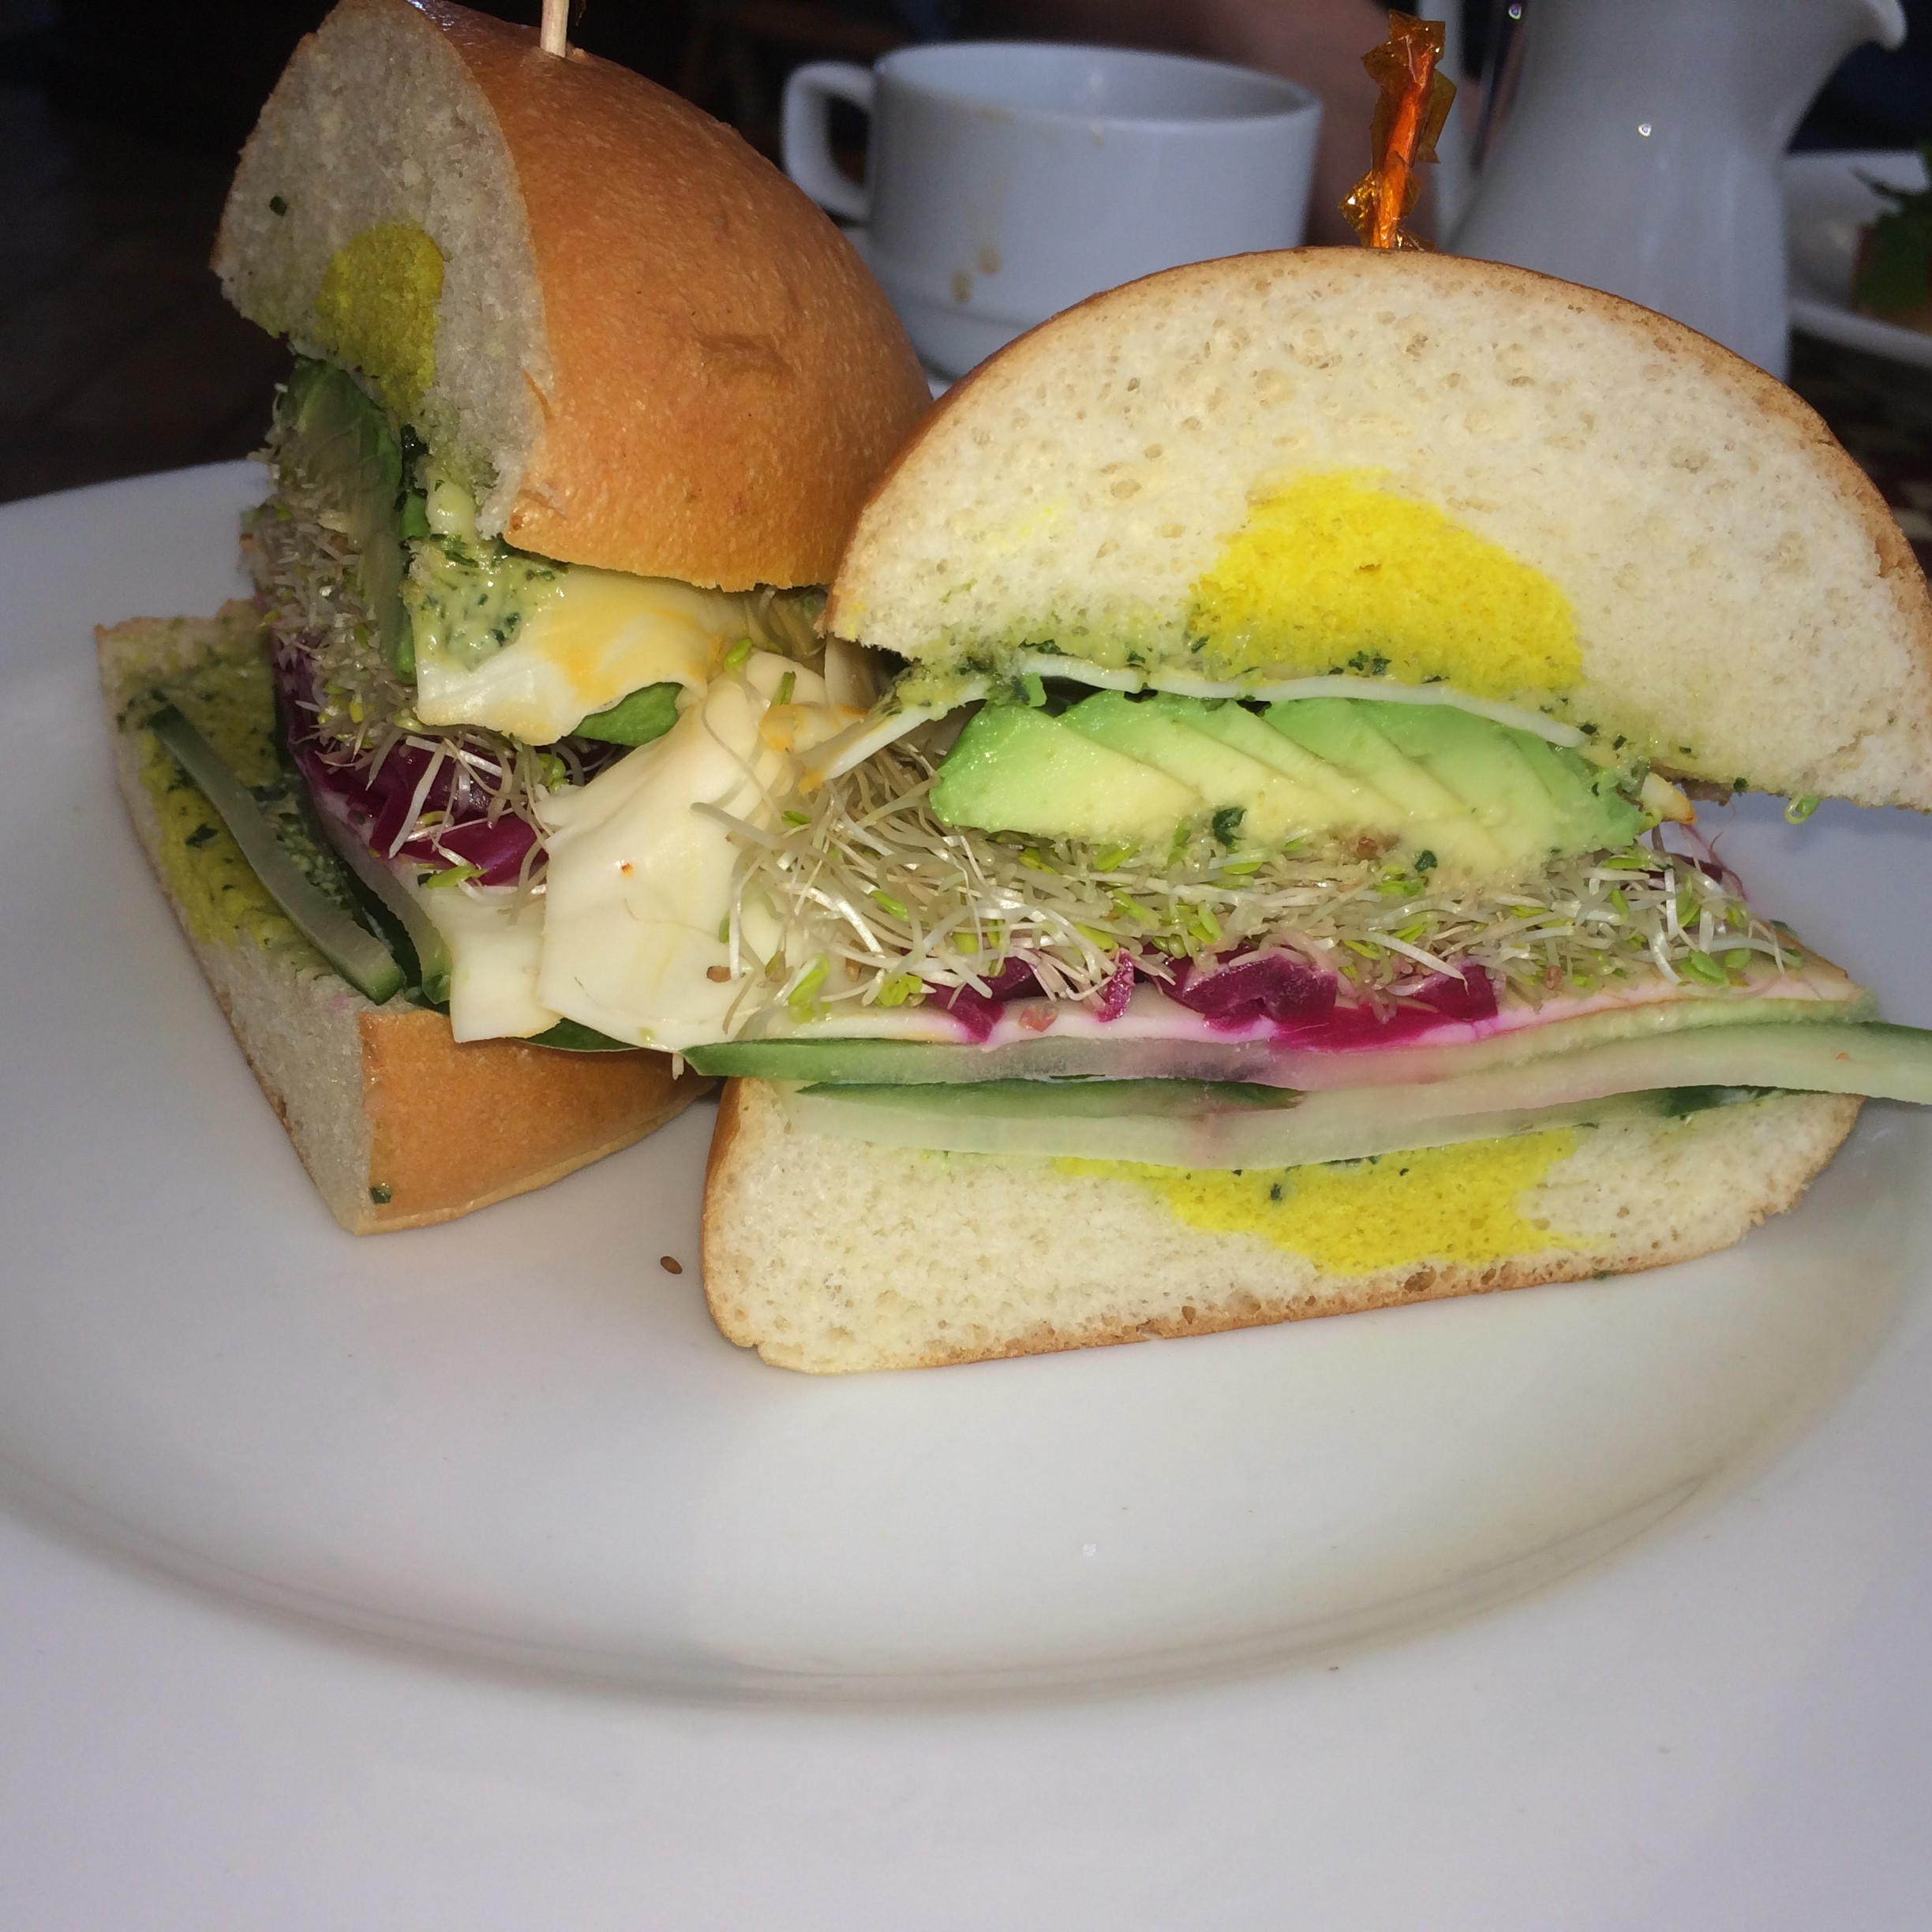 Cucumber, Avocado, Basil Sandwich